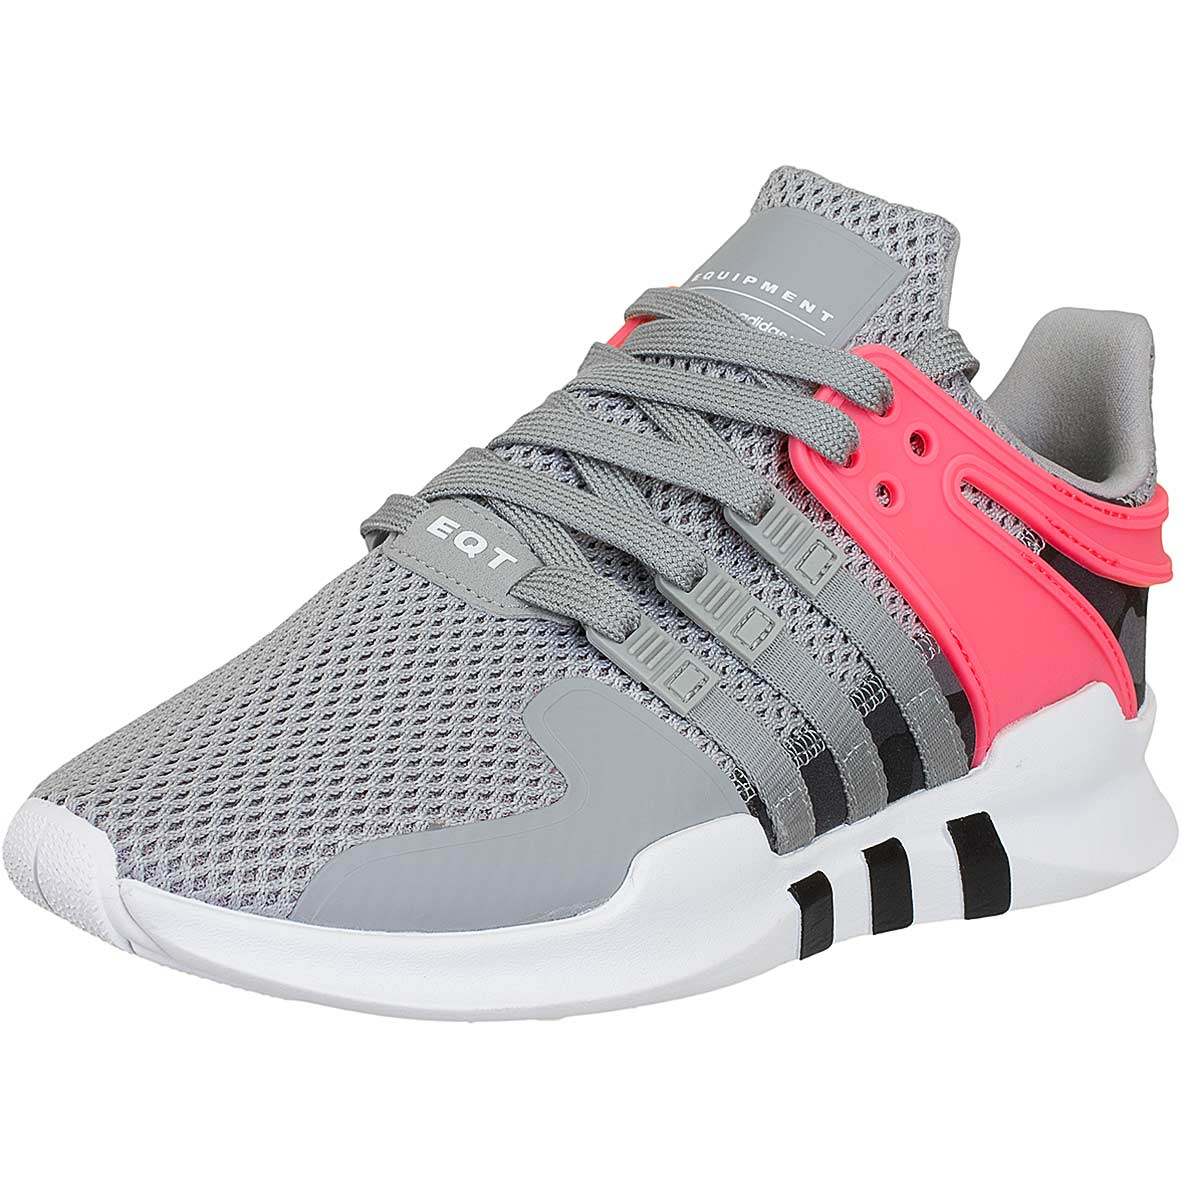 outlet amazing price quite nice adidas equipment support